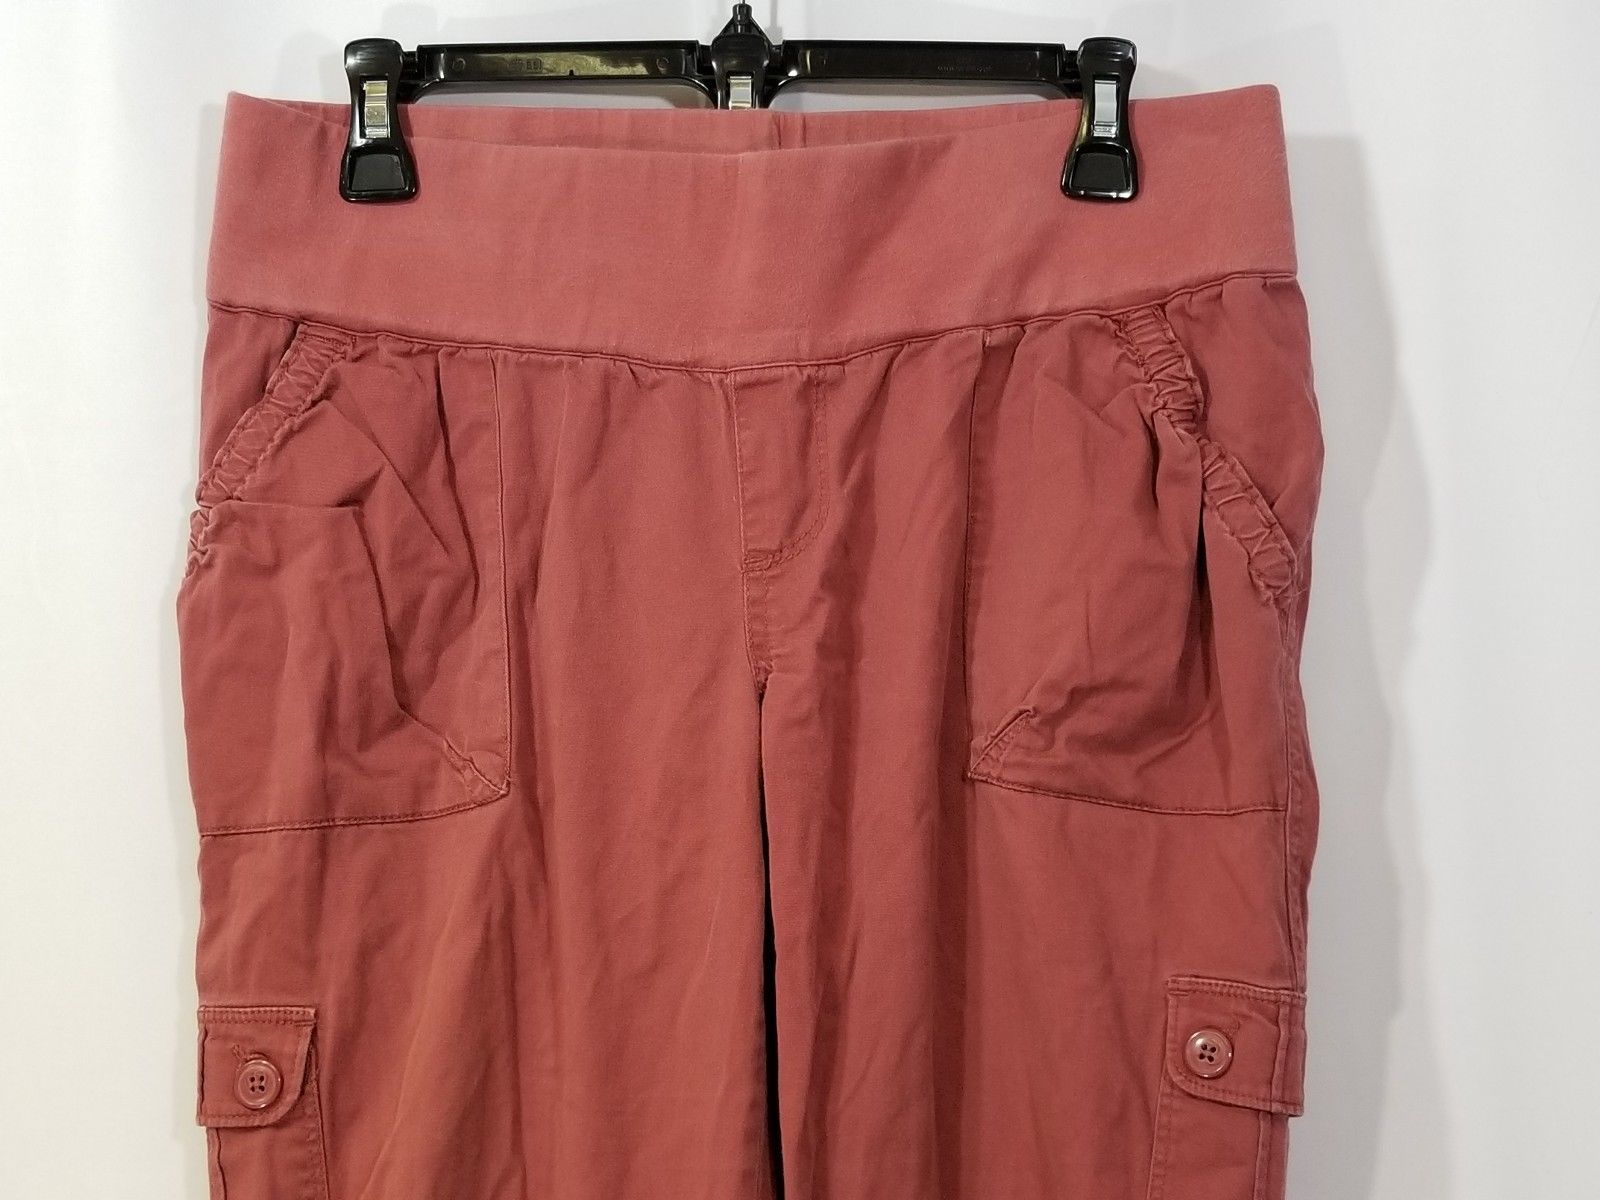 fa762610a1e32 Liz Lange Maternity For Target Brown/Red Pants Size 4 Cotton Stretch